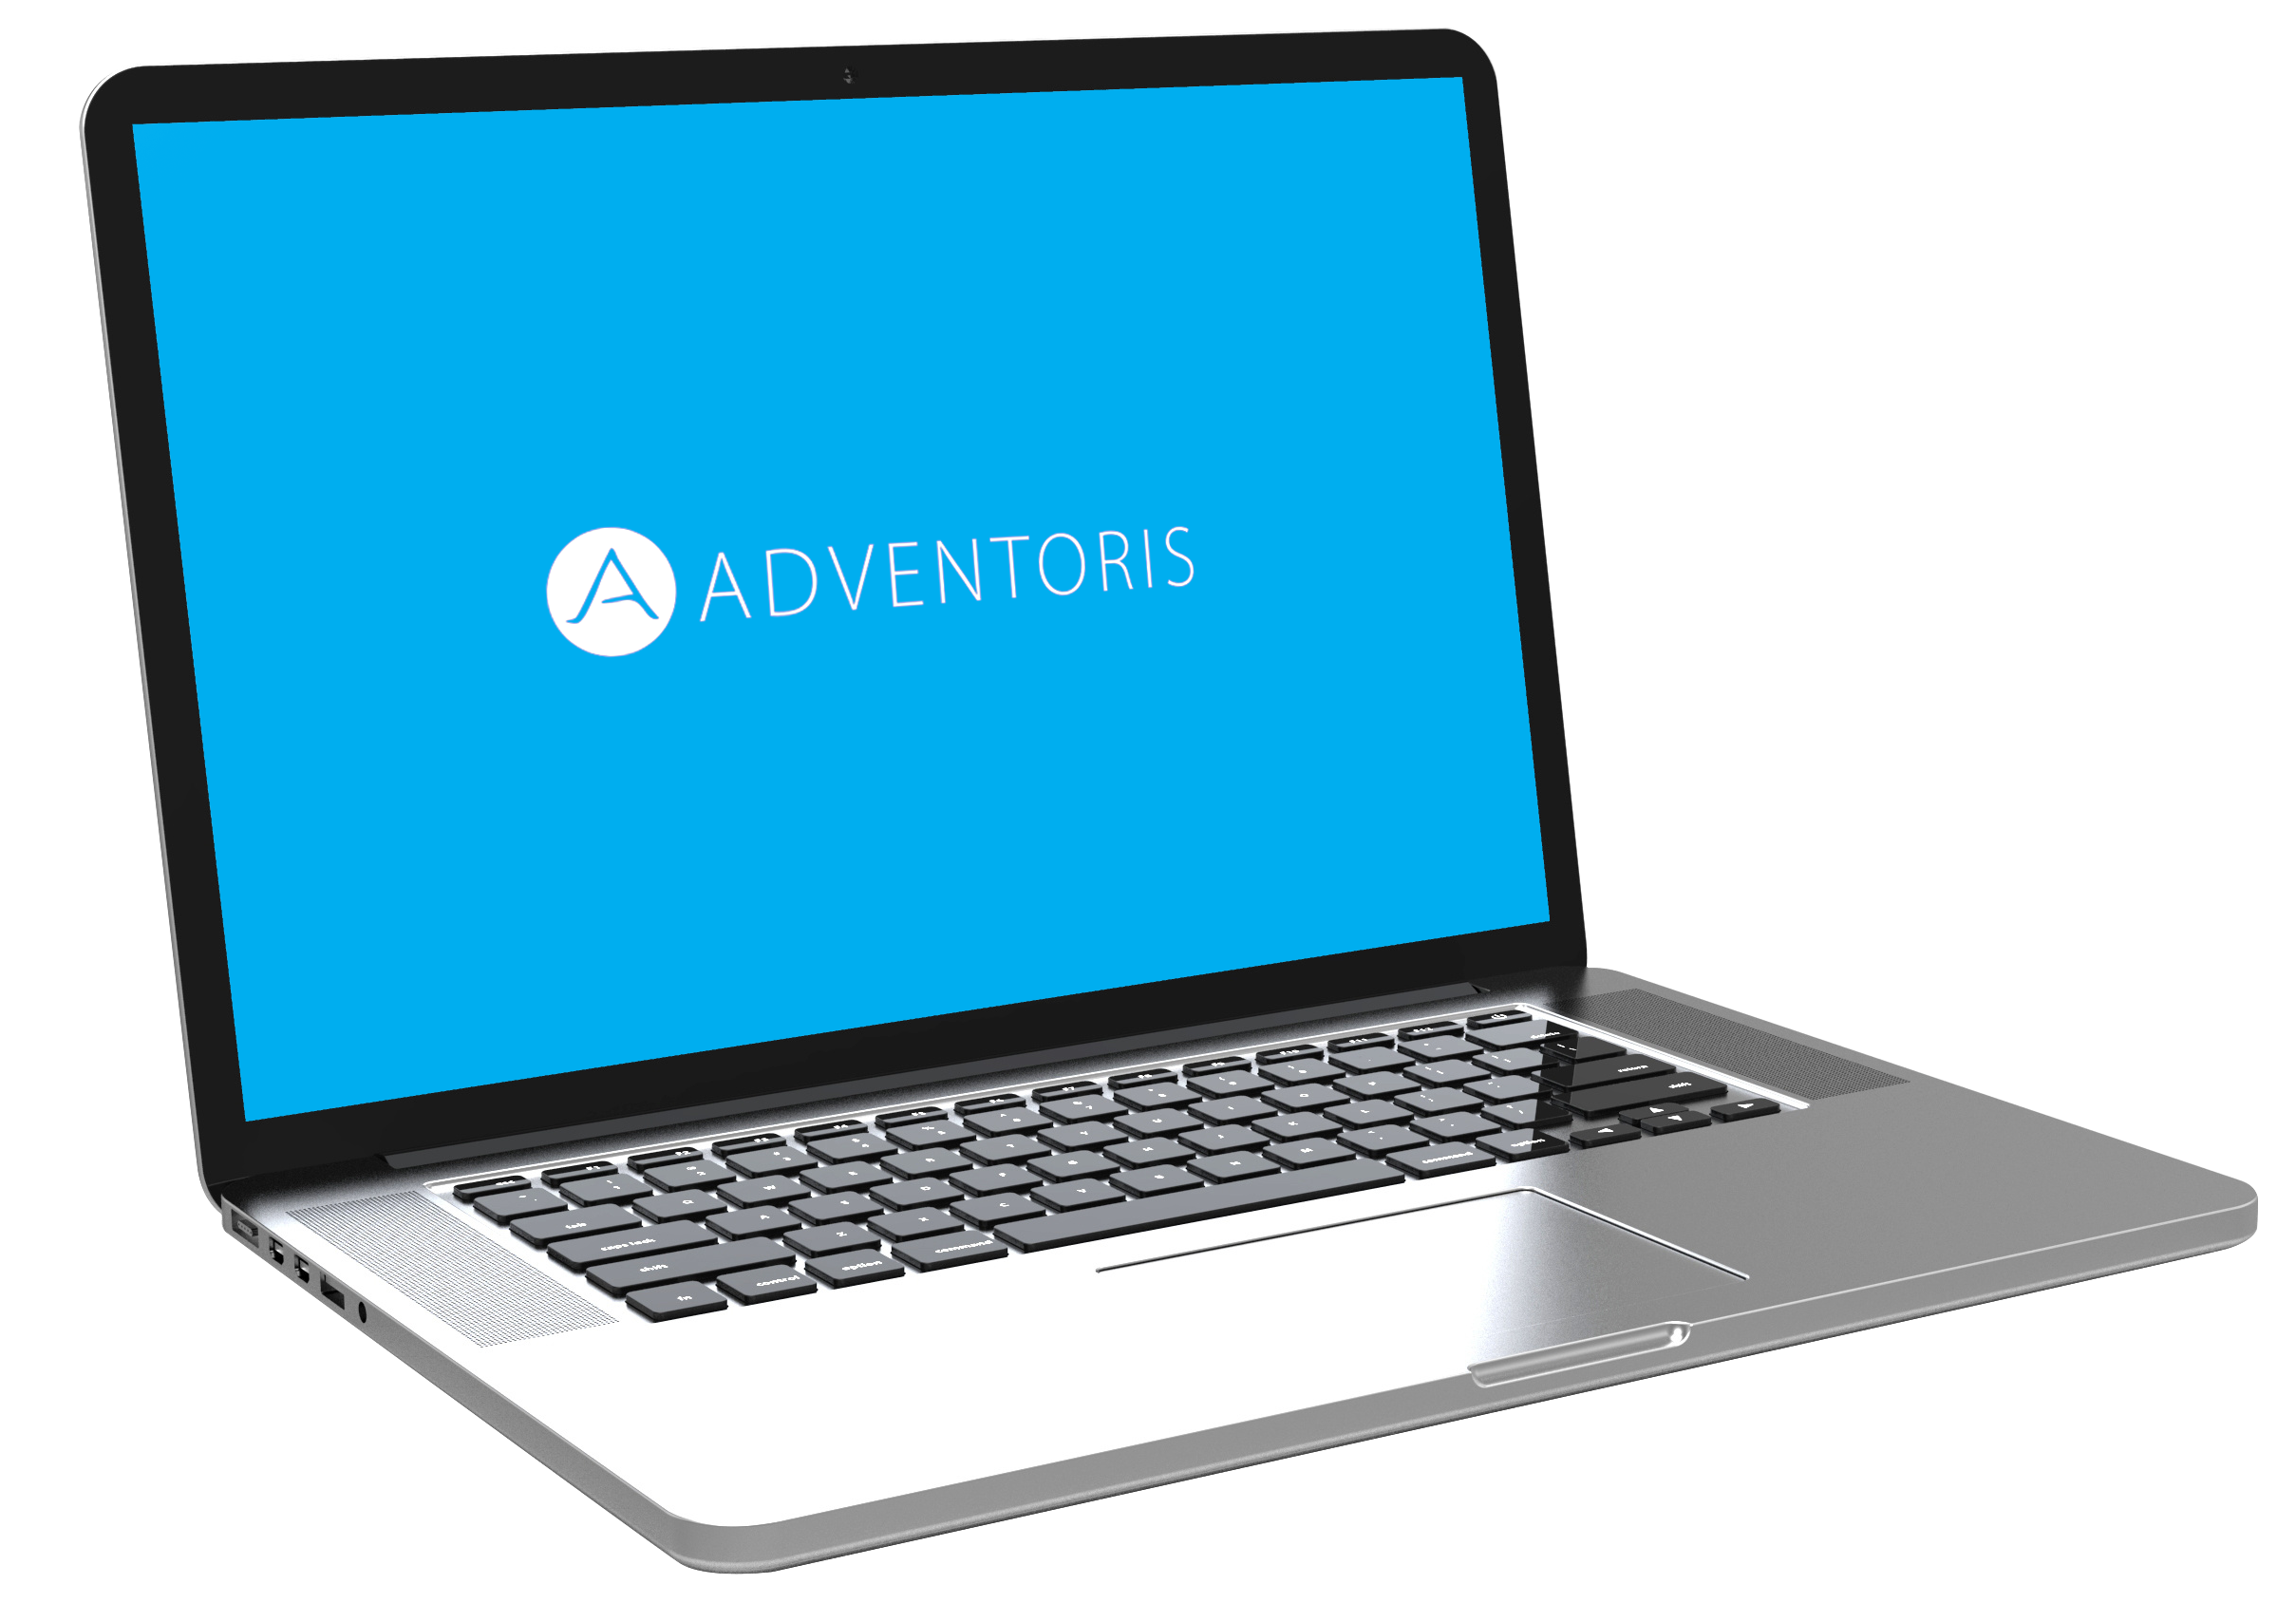 laptop png who are adventoris #10682